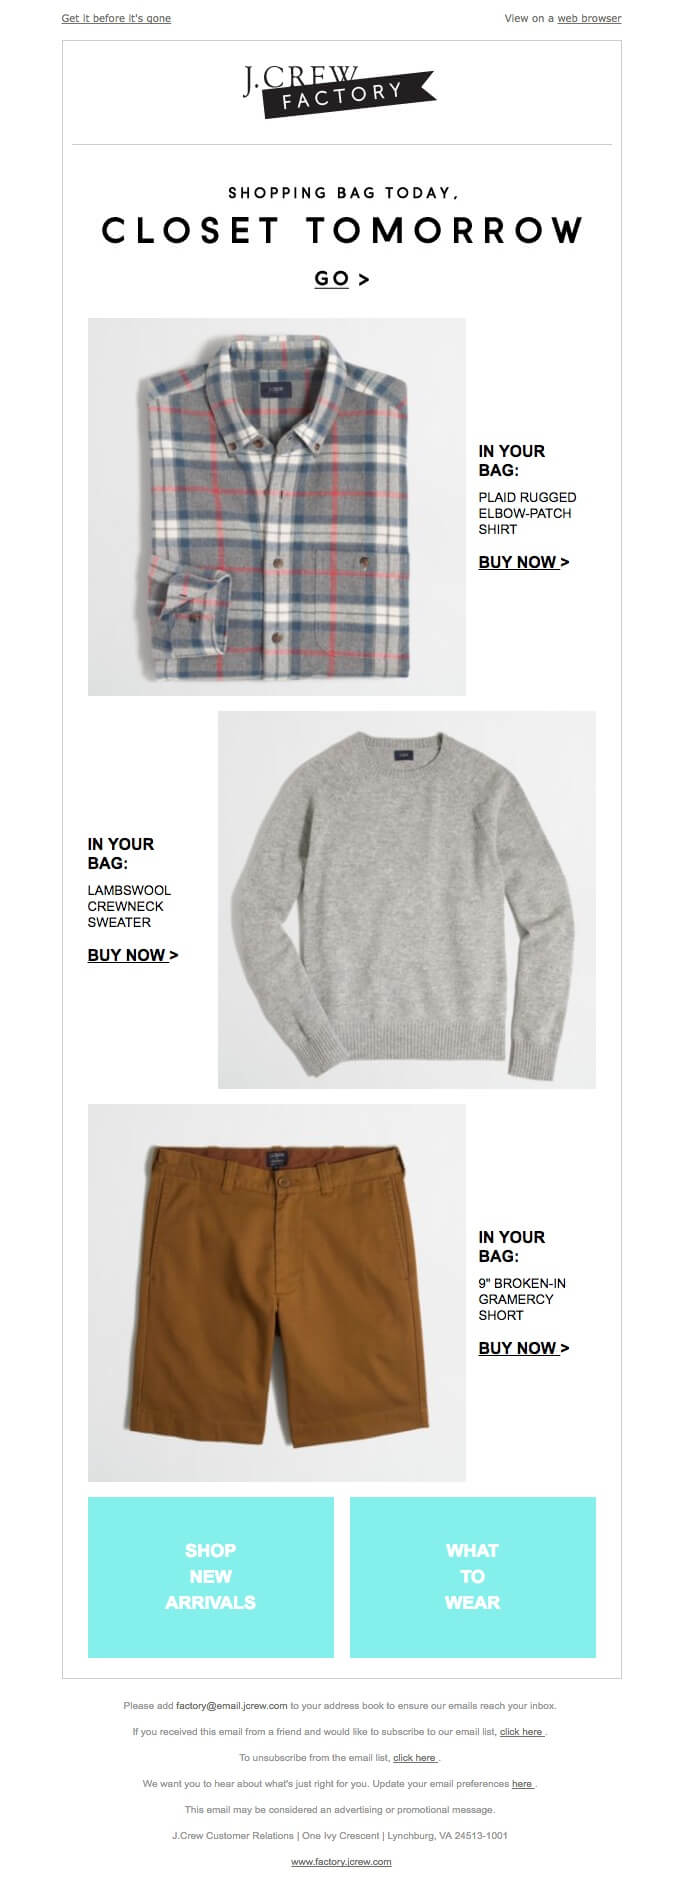 J.Crew Factory in your cart email